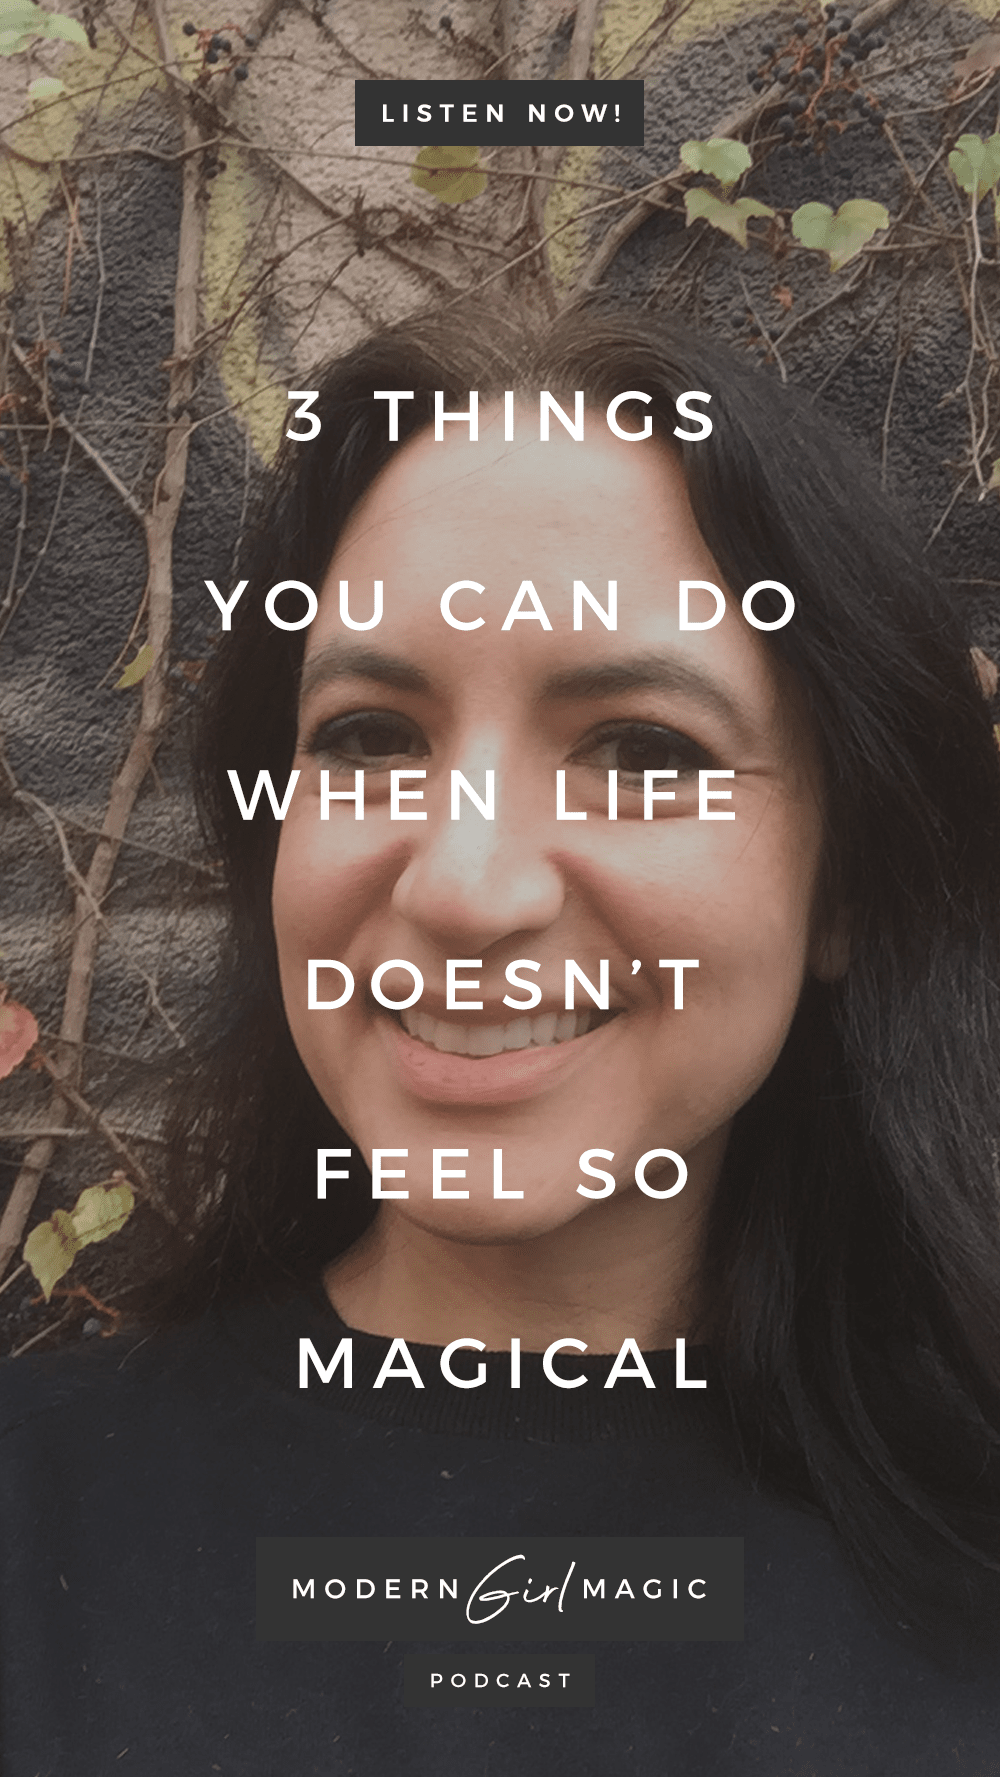 Modern Girl Magic Episode #11: 3 Things You Can Do When Life Doesn't Seem So Magical